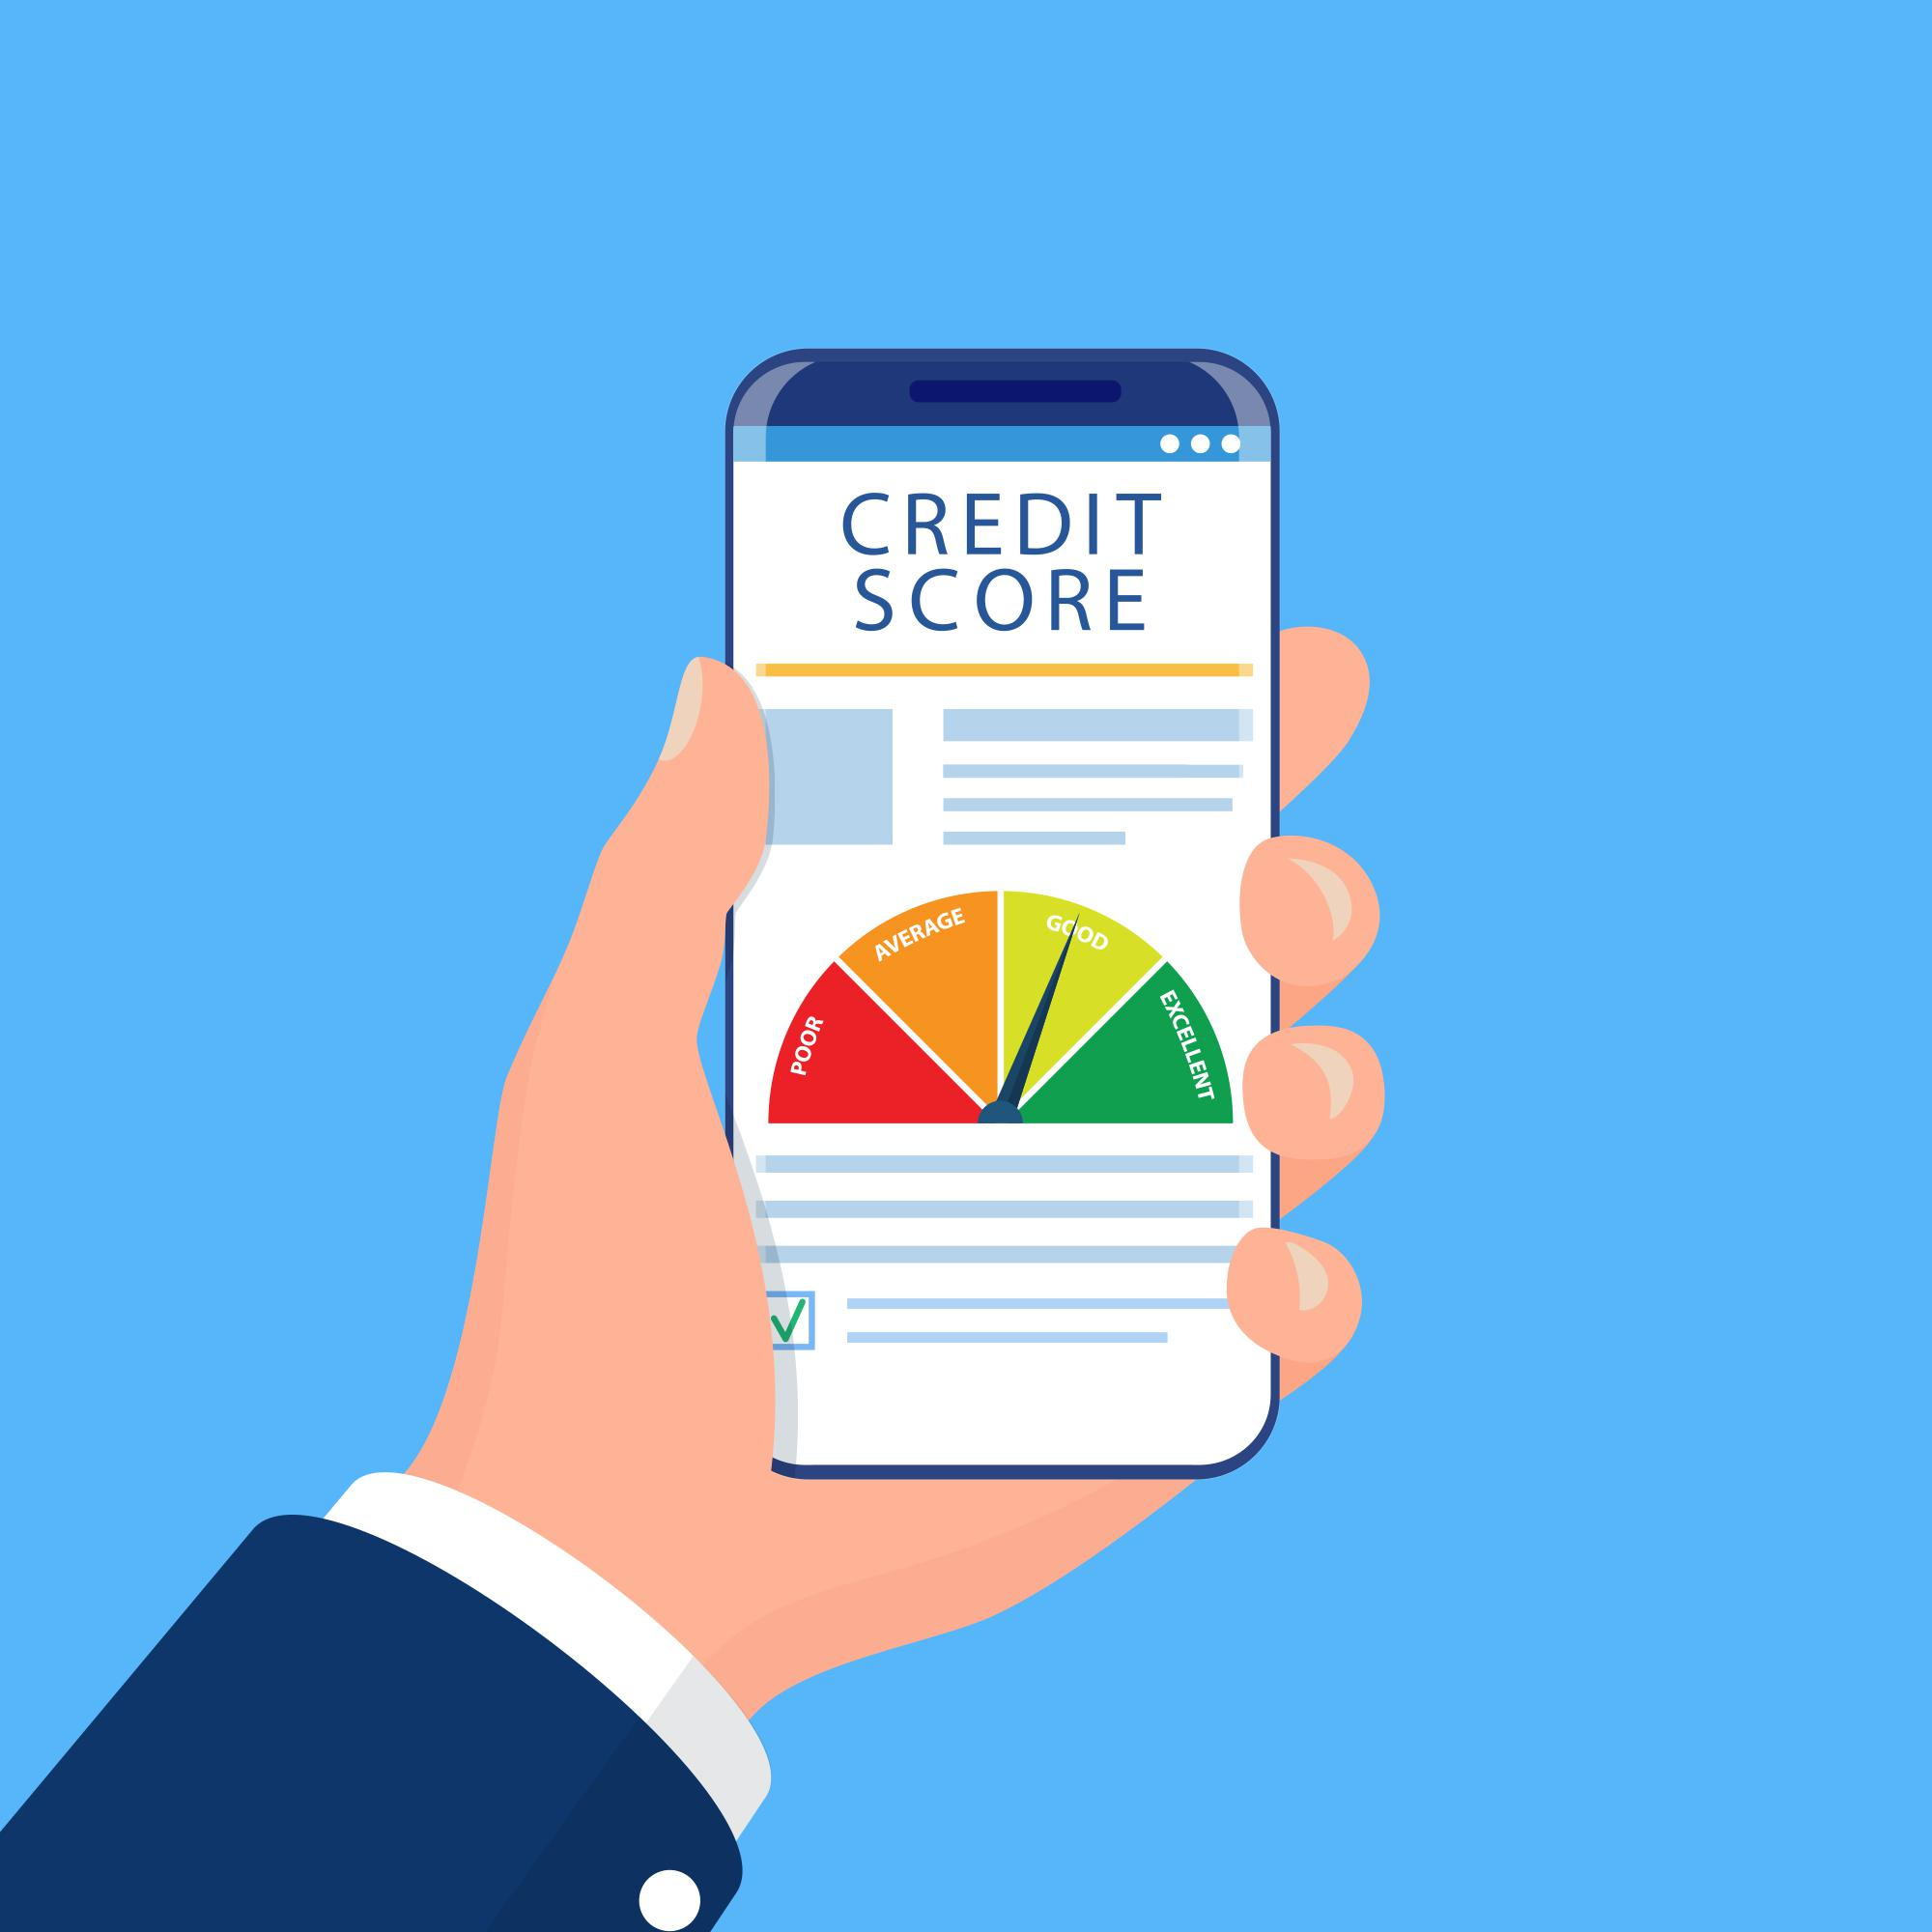 What Is the Relationship Between Credit and Debt?